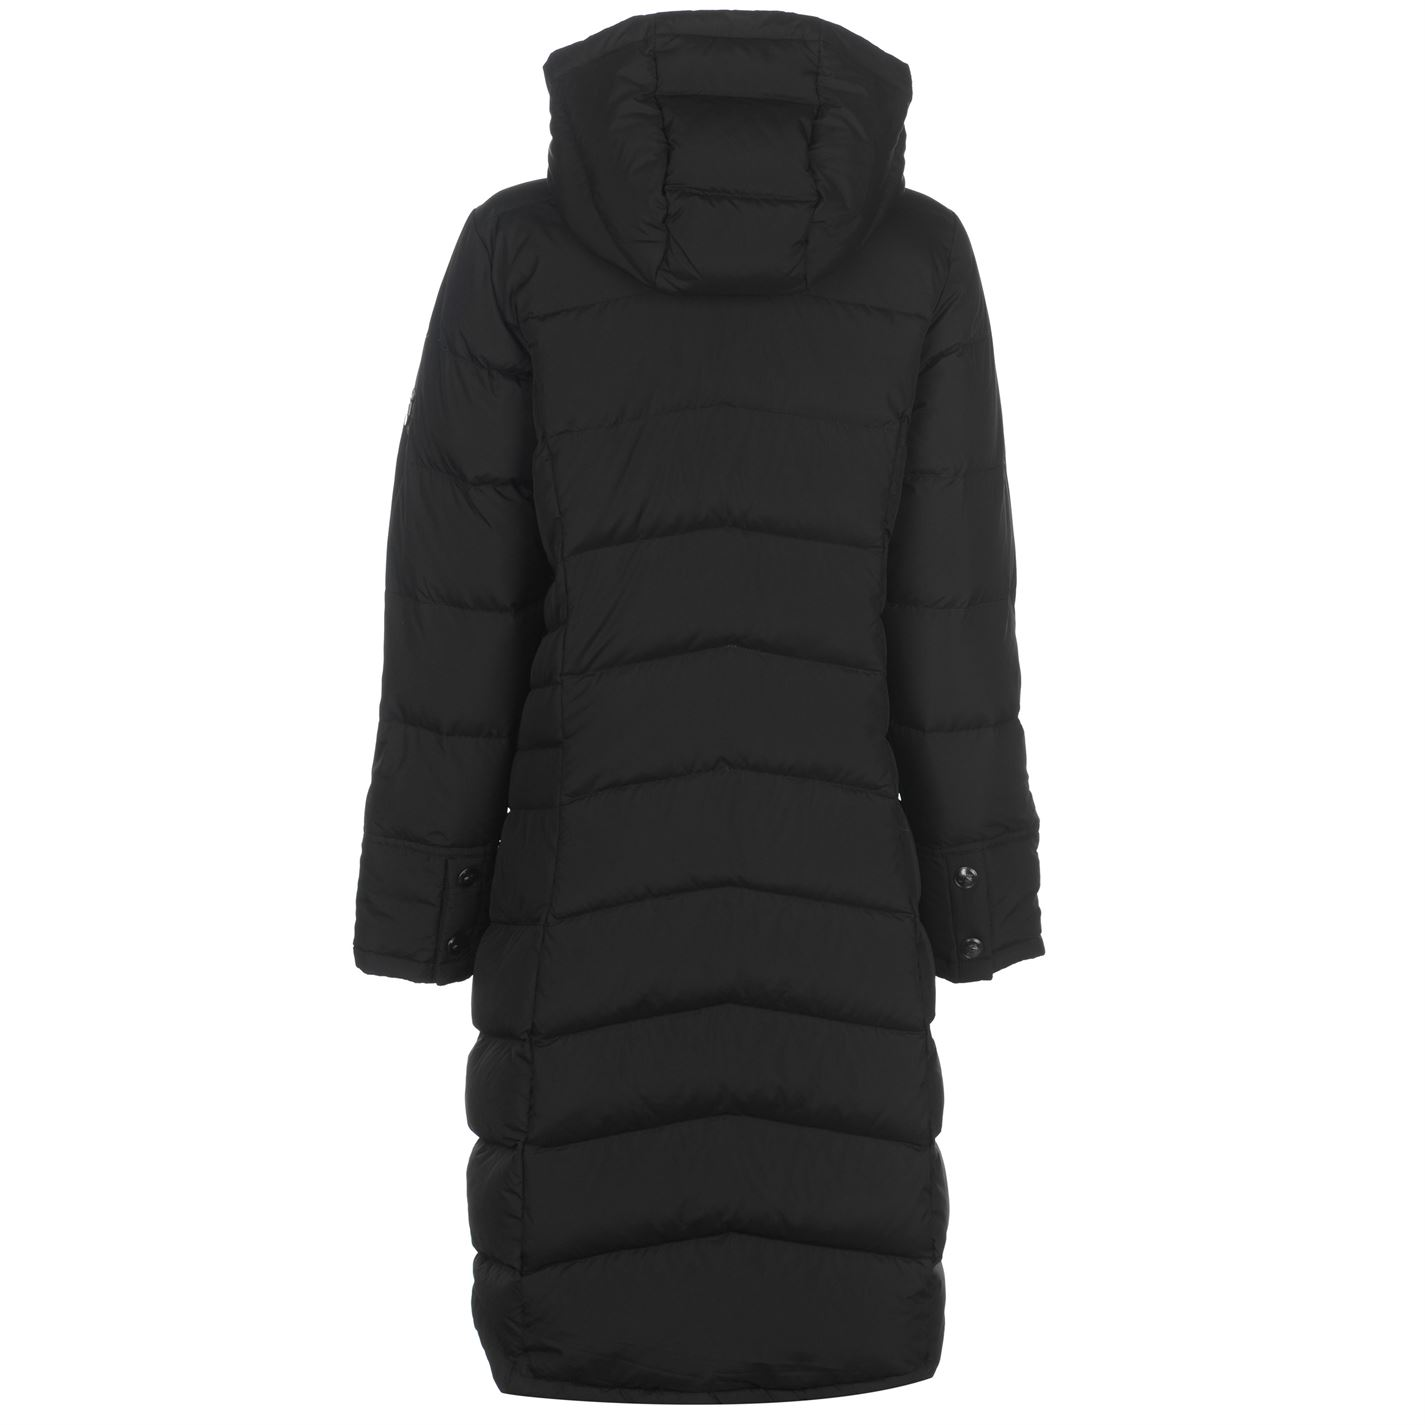 ce66cc17c Details about Karrimor Womens Long Down Jacket Puffer Coat Top Sleeve  Hooded Zip Full Outdoor